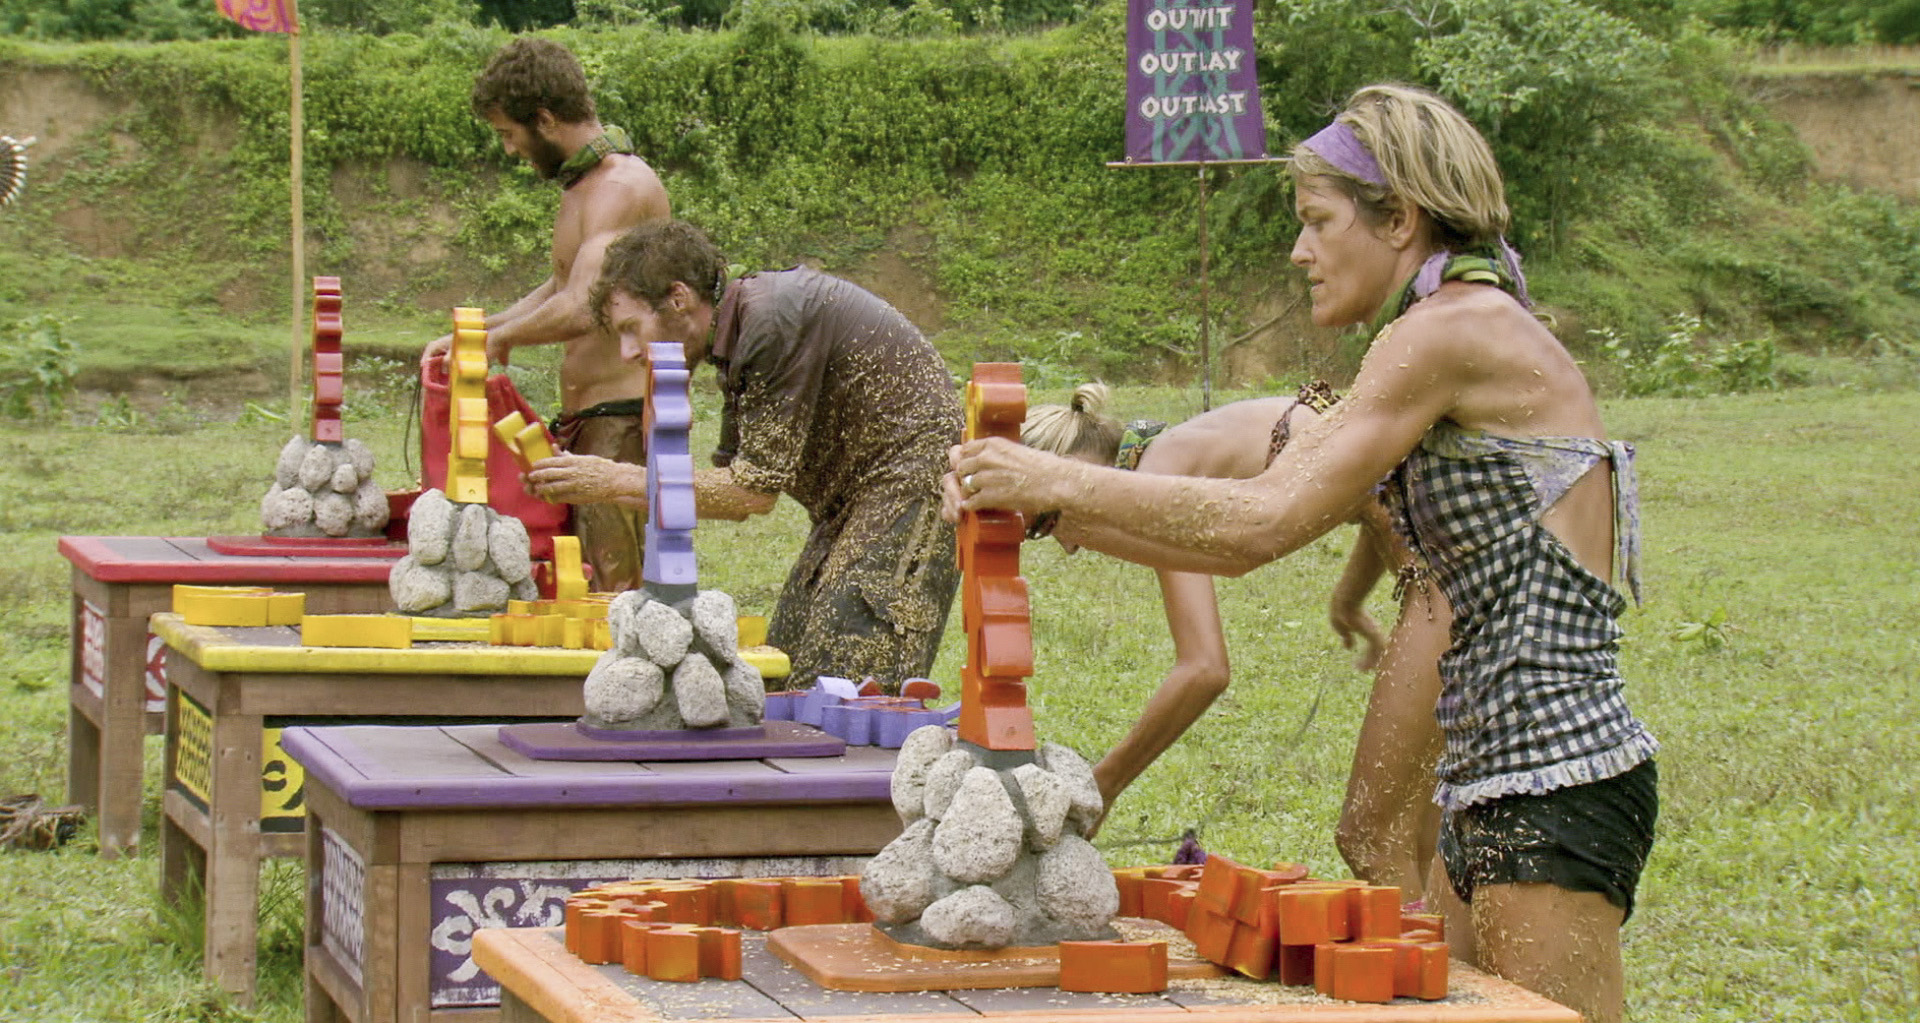 Working on the challenge in the Season 26 Finale